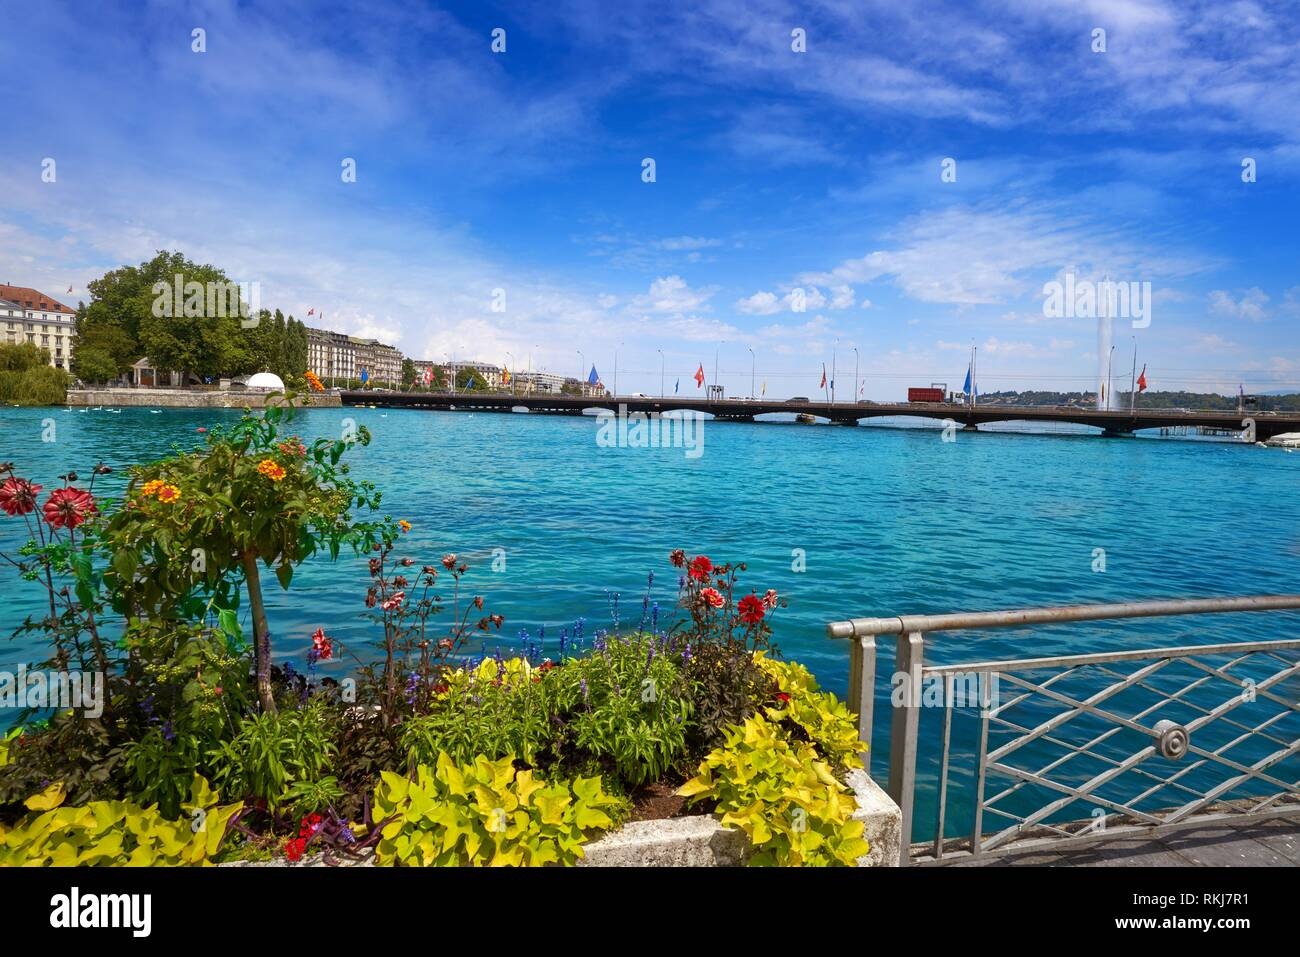 Geneva Geneve at Leman lake in Switzerland Swiss. - Stock Image